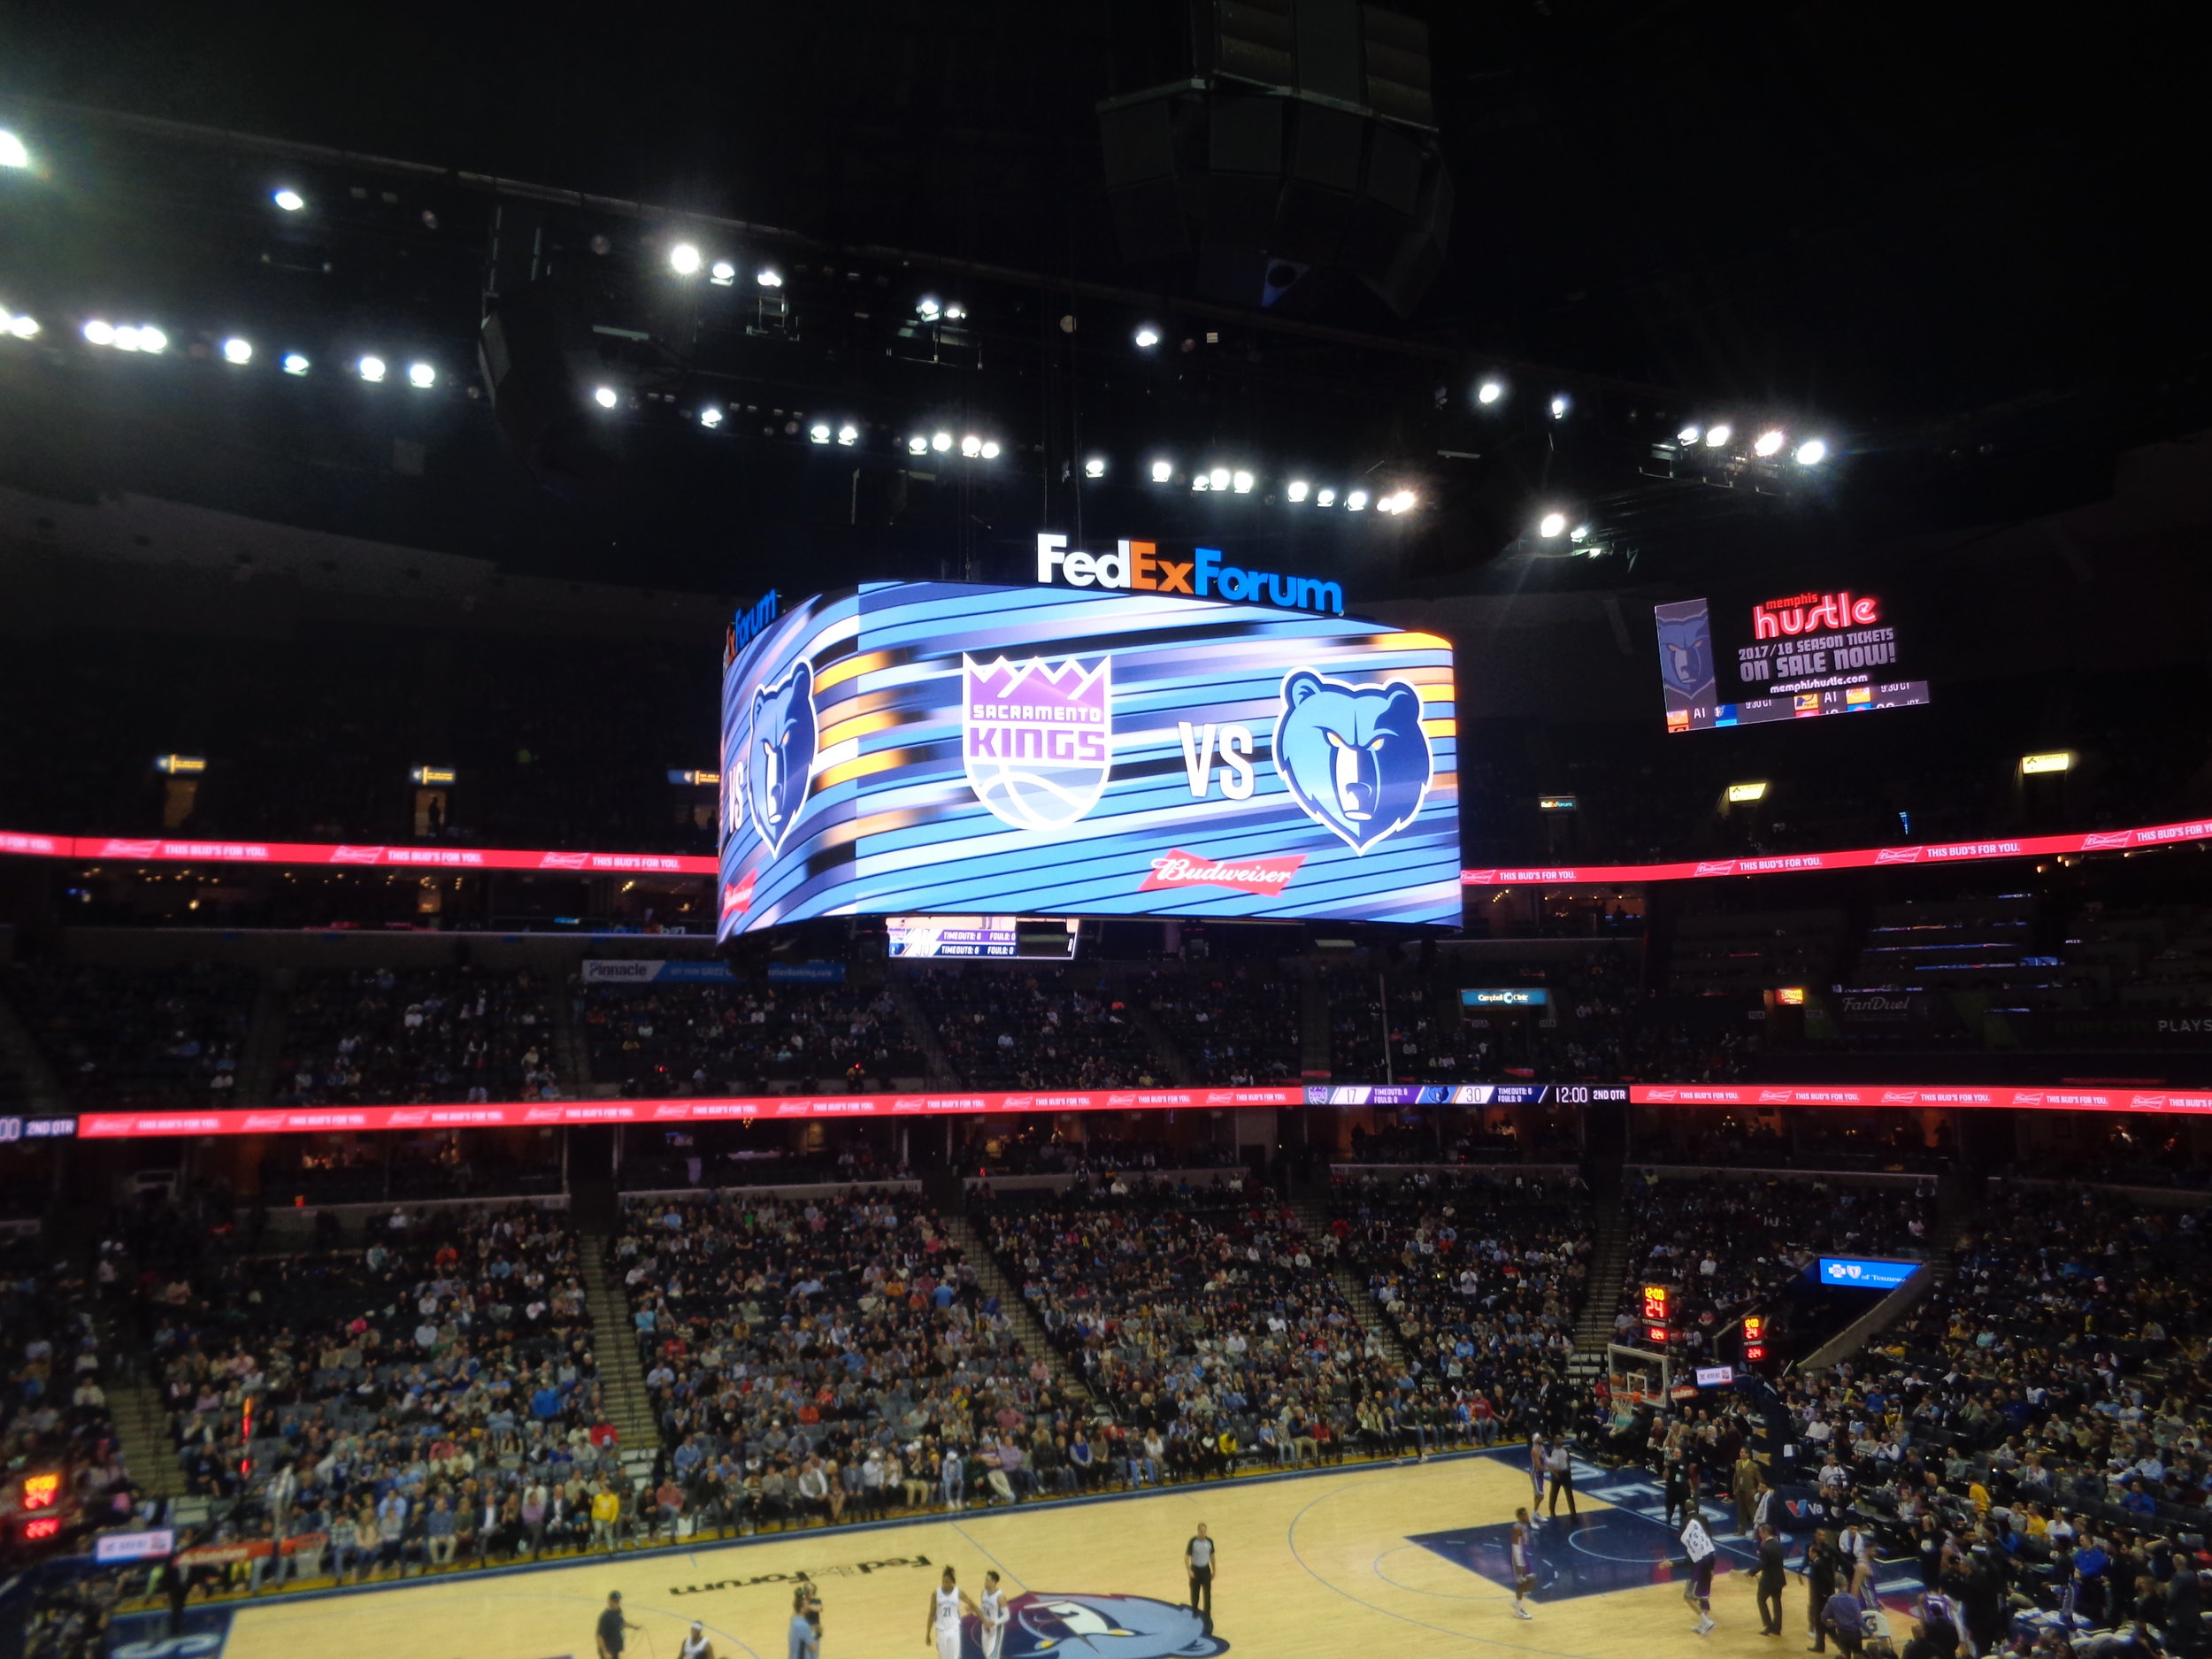 FedEx Forum Scoreboard